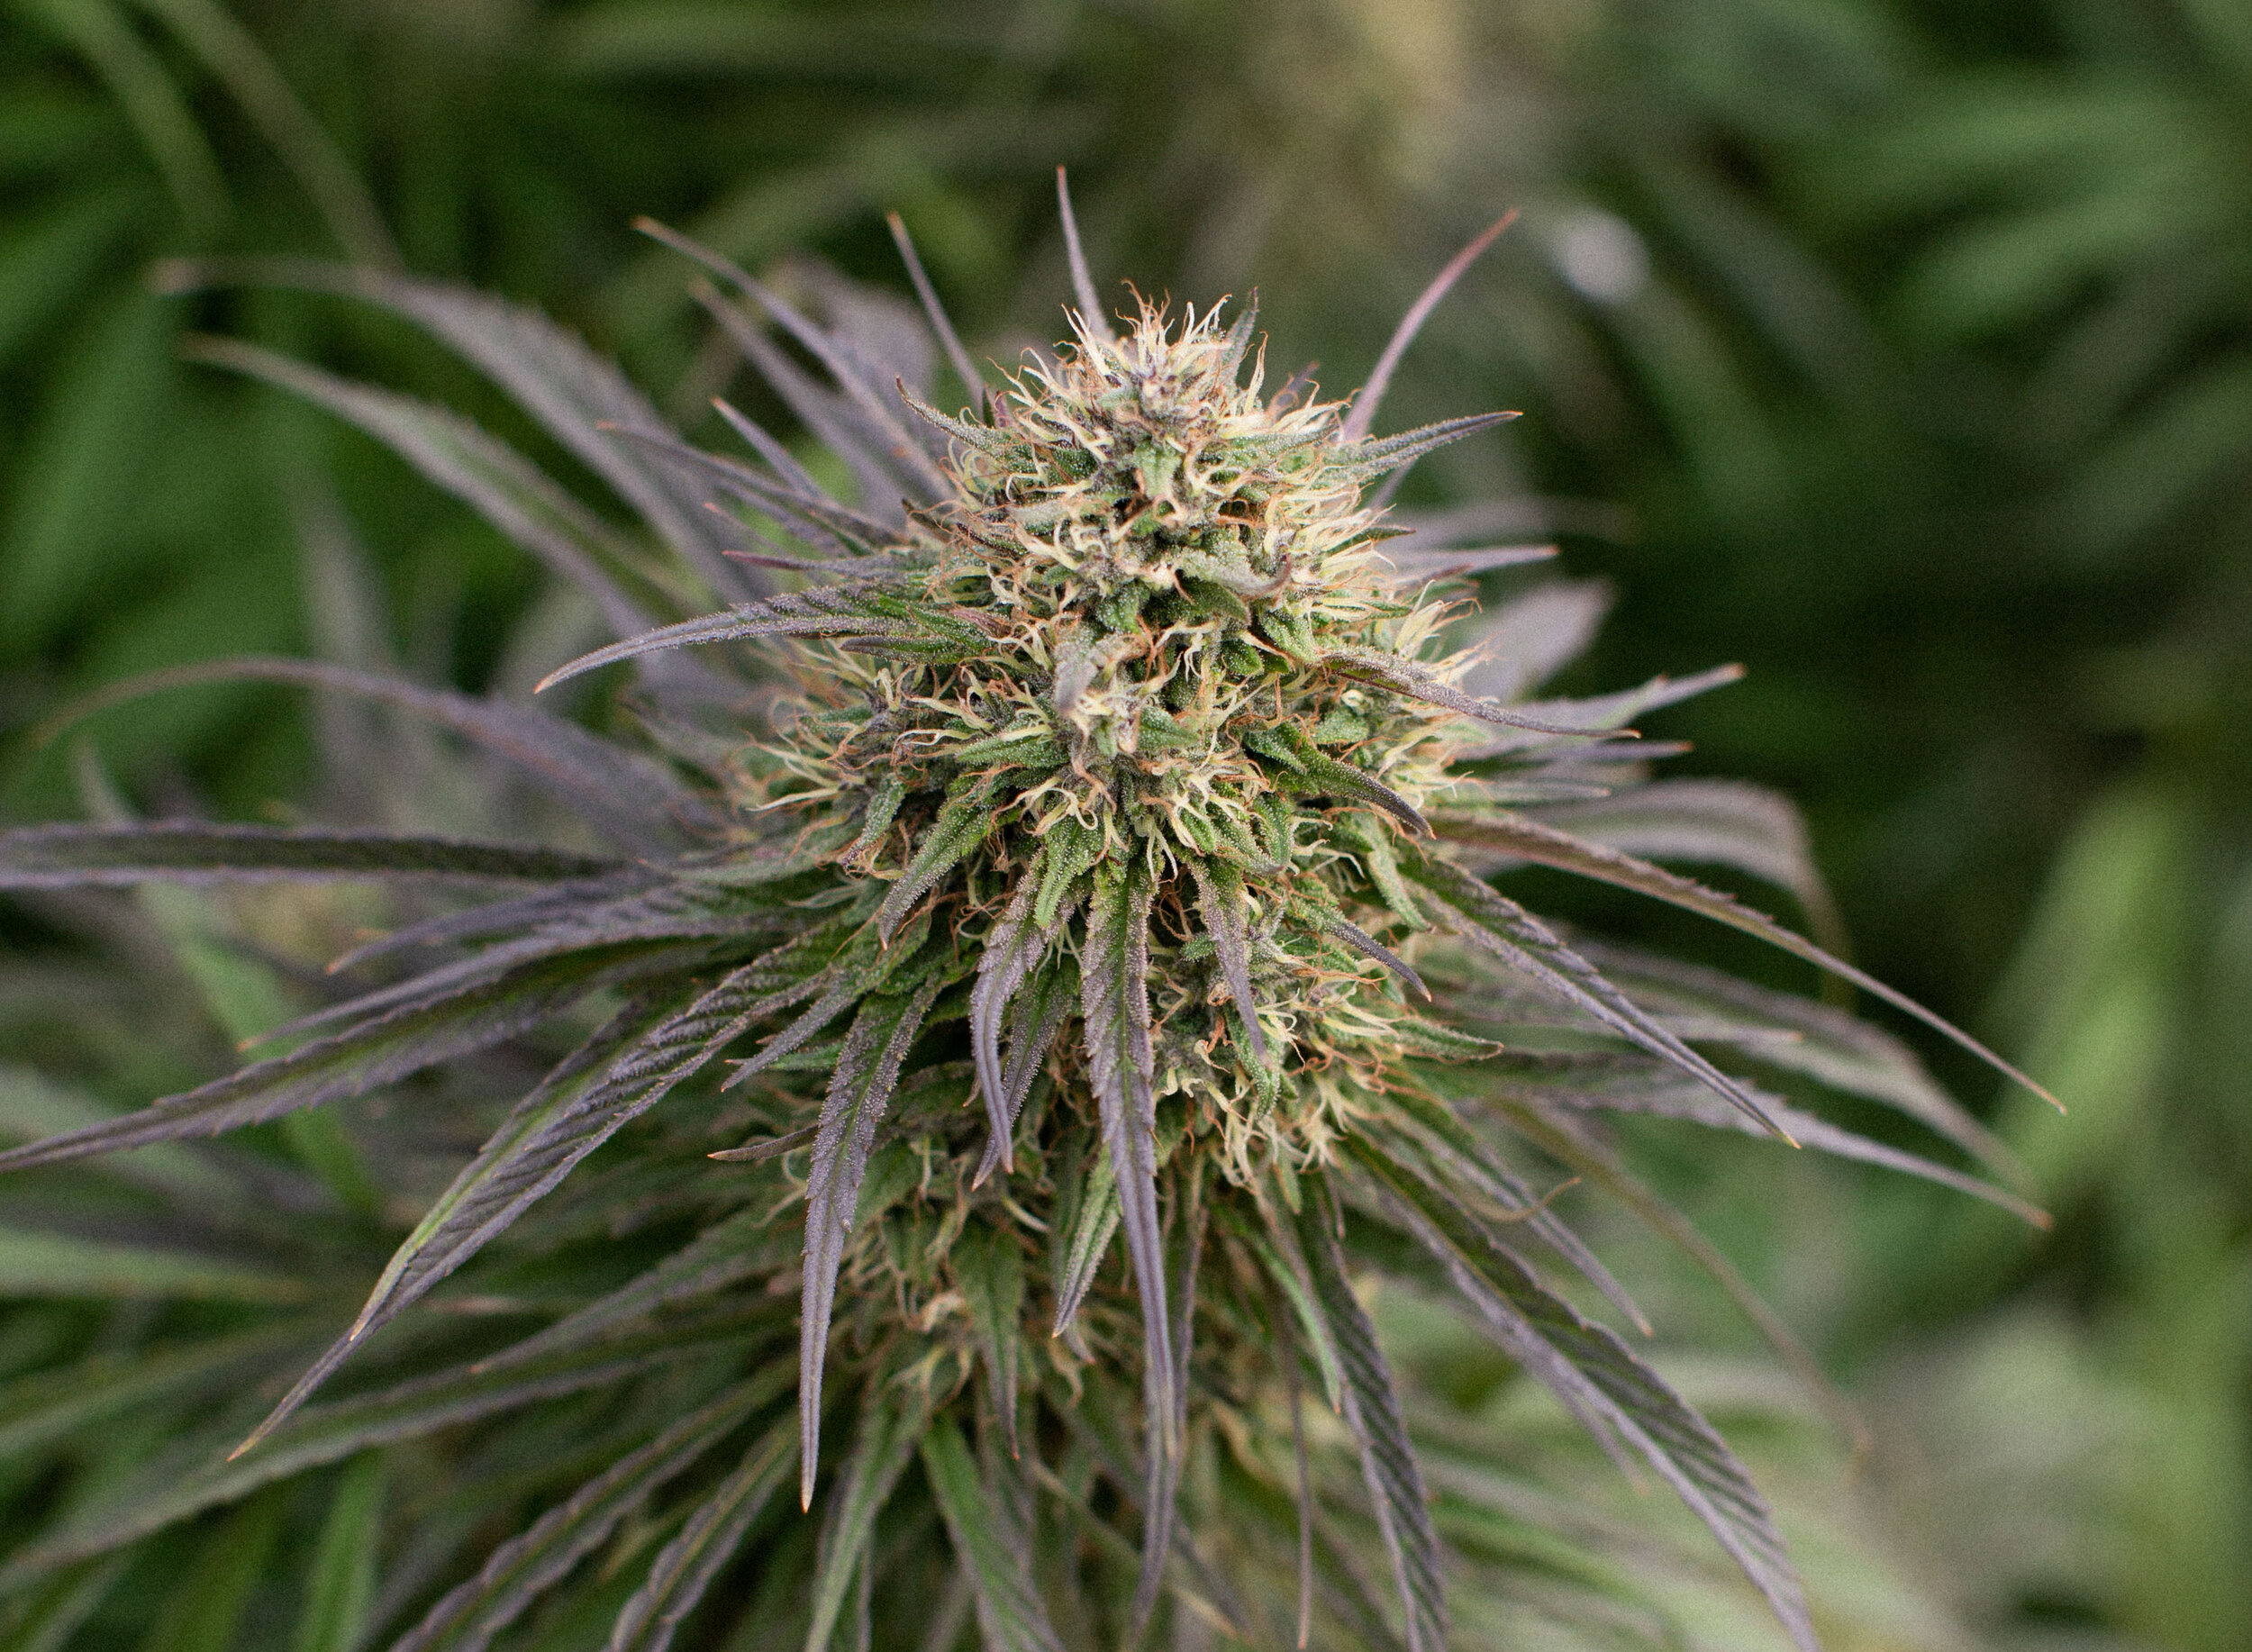 Stella Blue - Parentage: Blue Dynamite x Ringo's GiftProfile: 16-18% CBD   2-3% THC  Laboratory results coming soonNotes: Coming soon